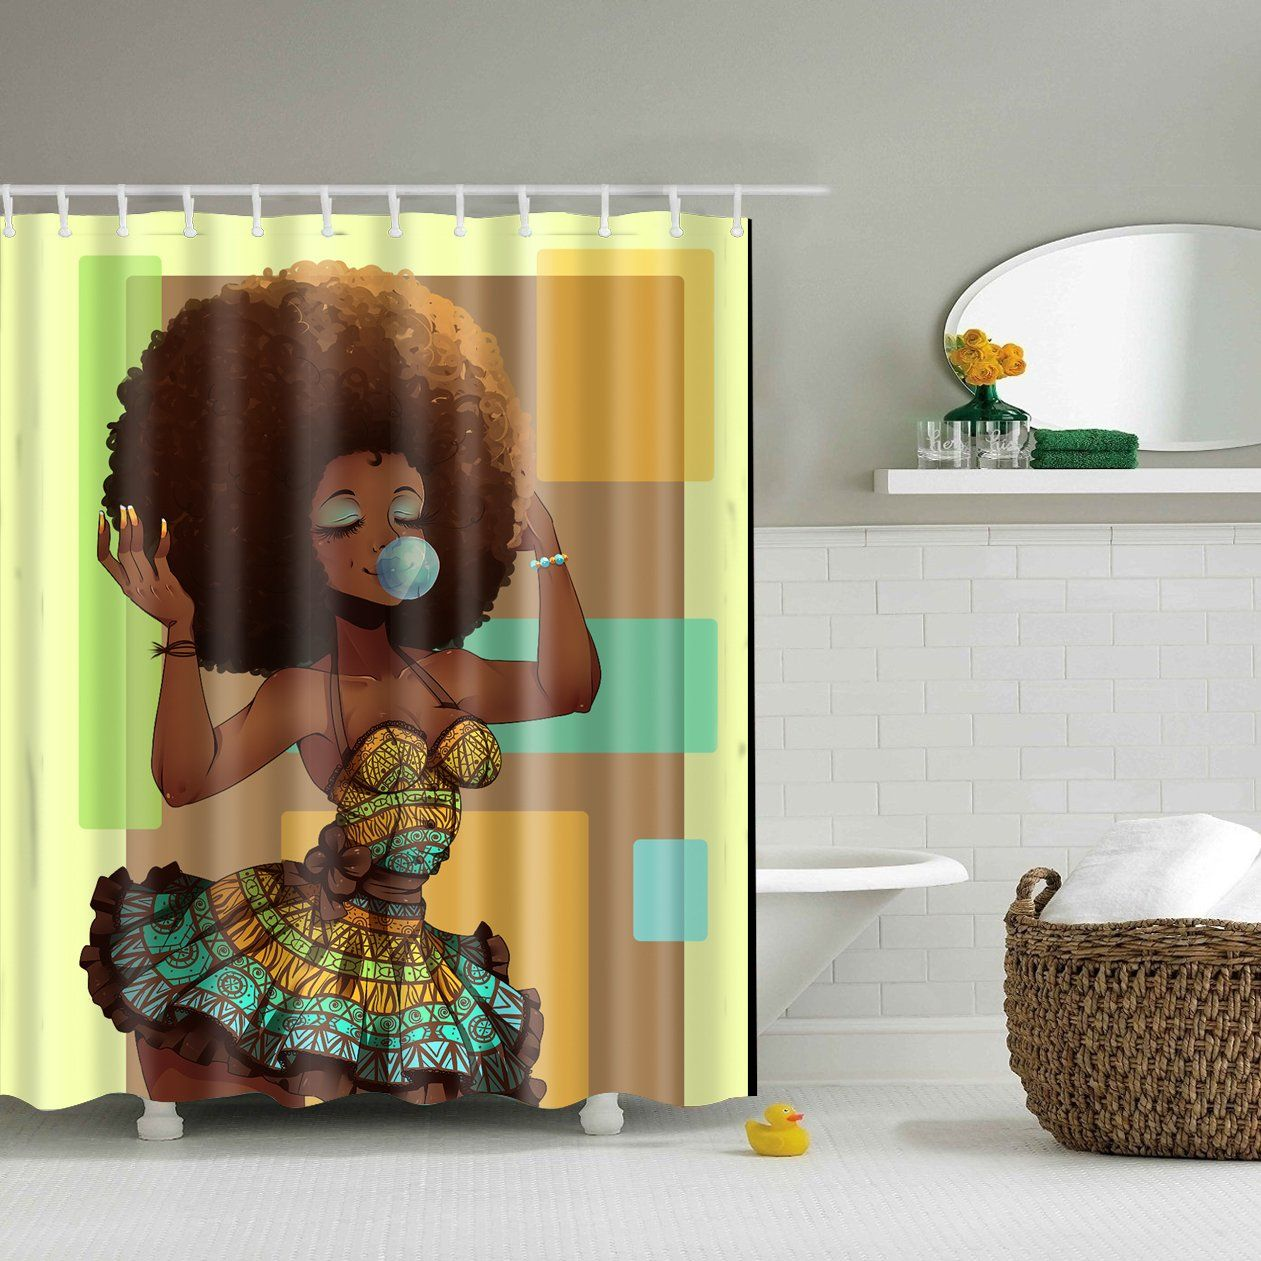 Afro Diva African Hairstyle Blowing Gum Shower Curtain